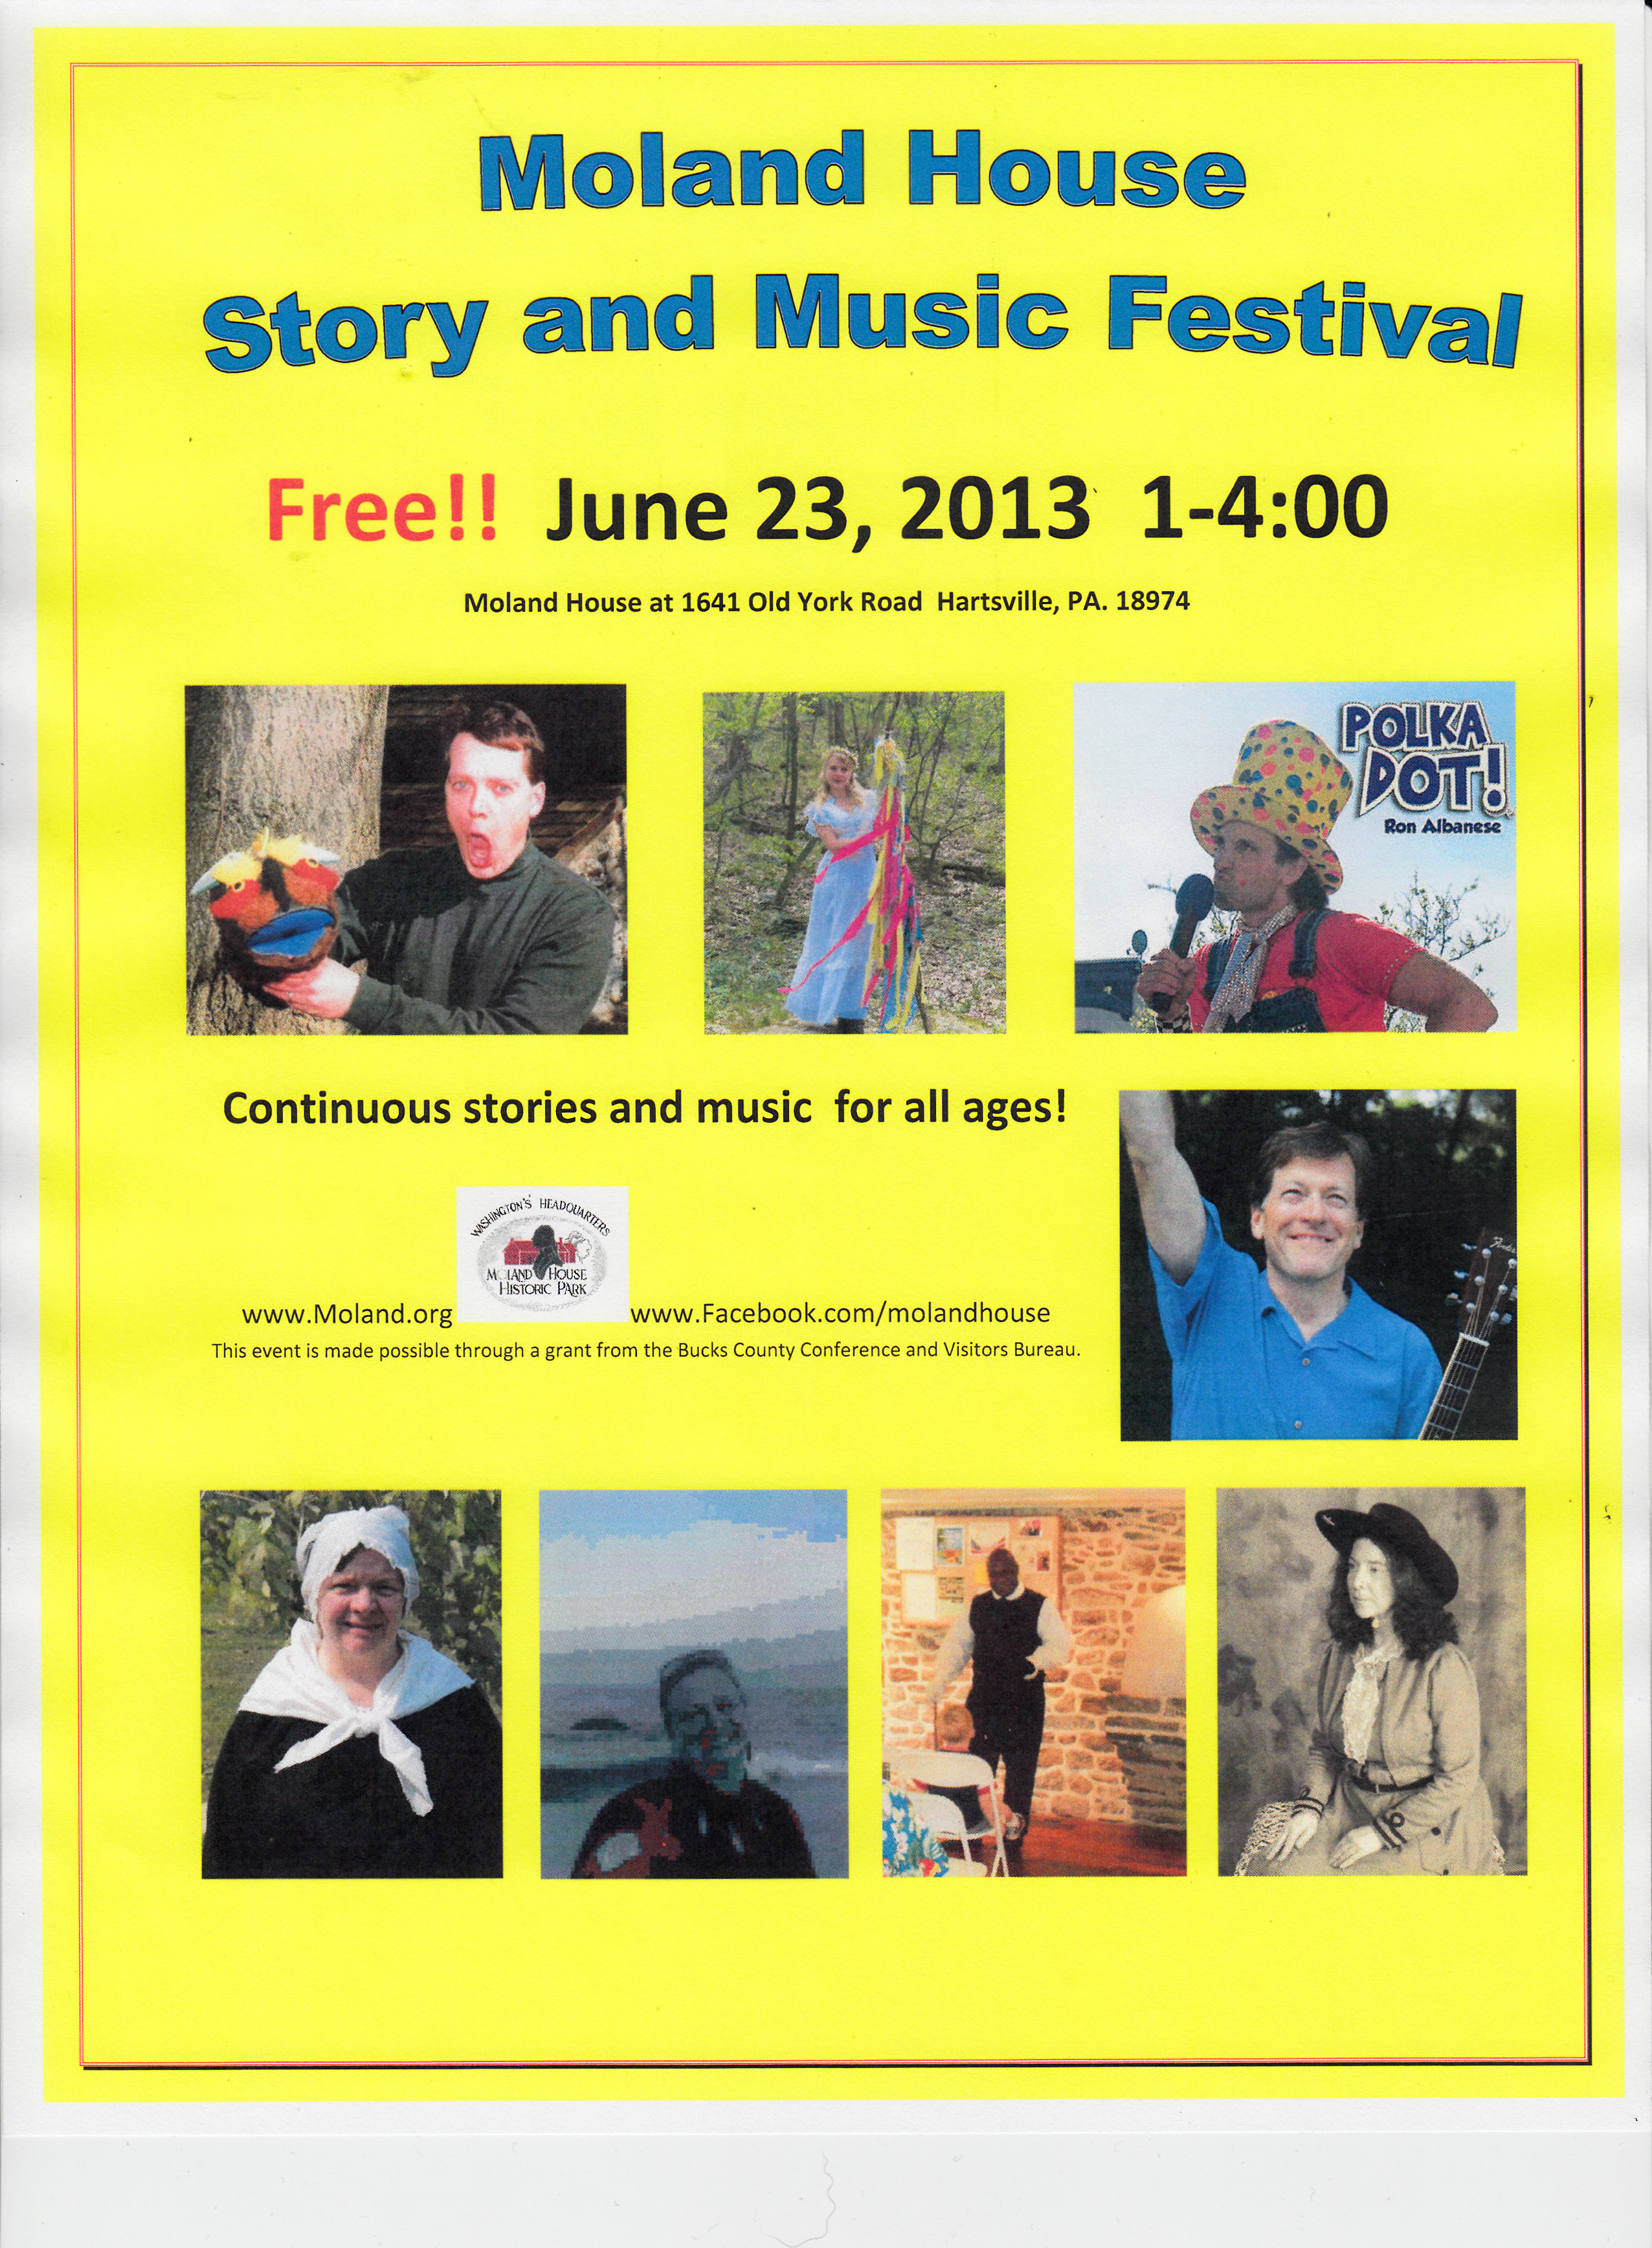 Story and Music Festival 2013 poster